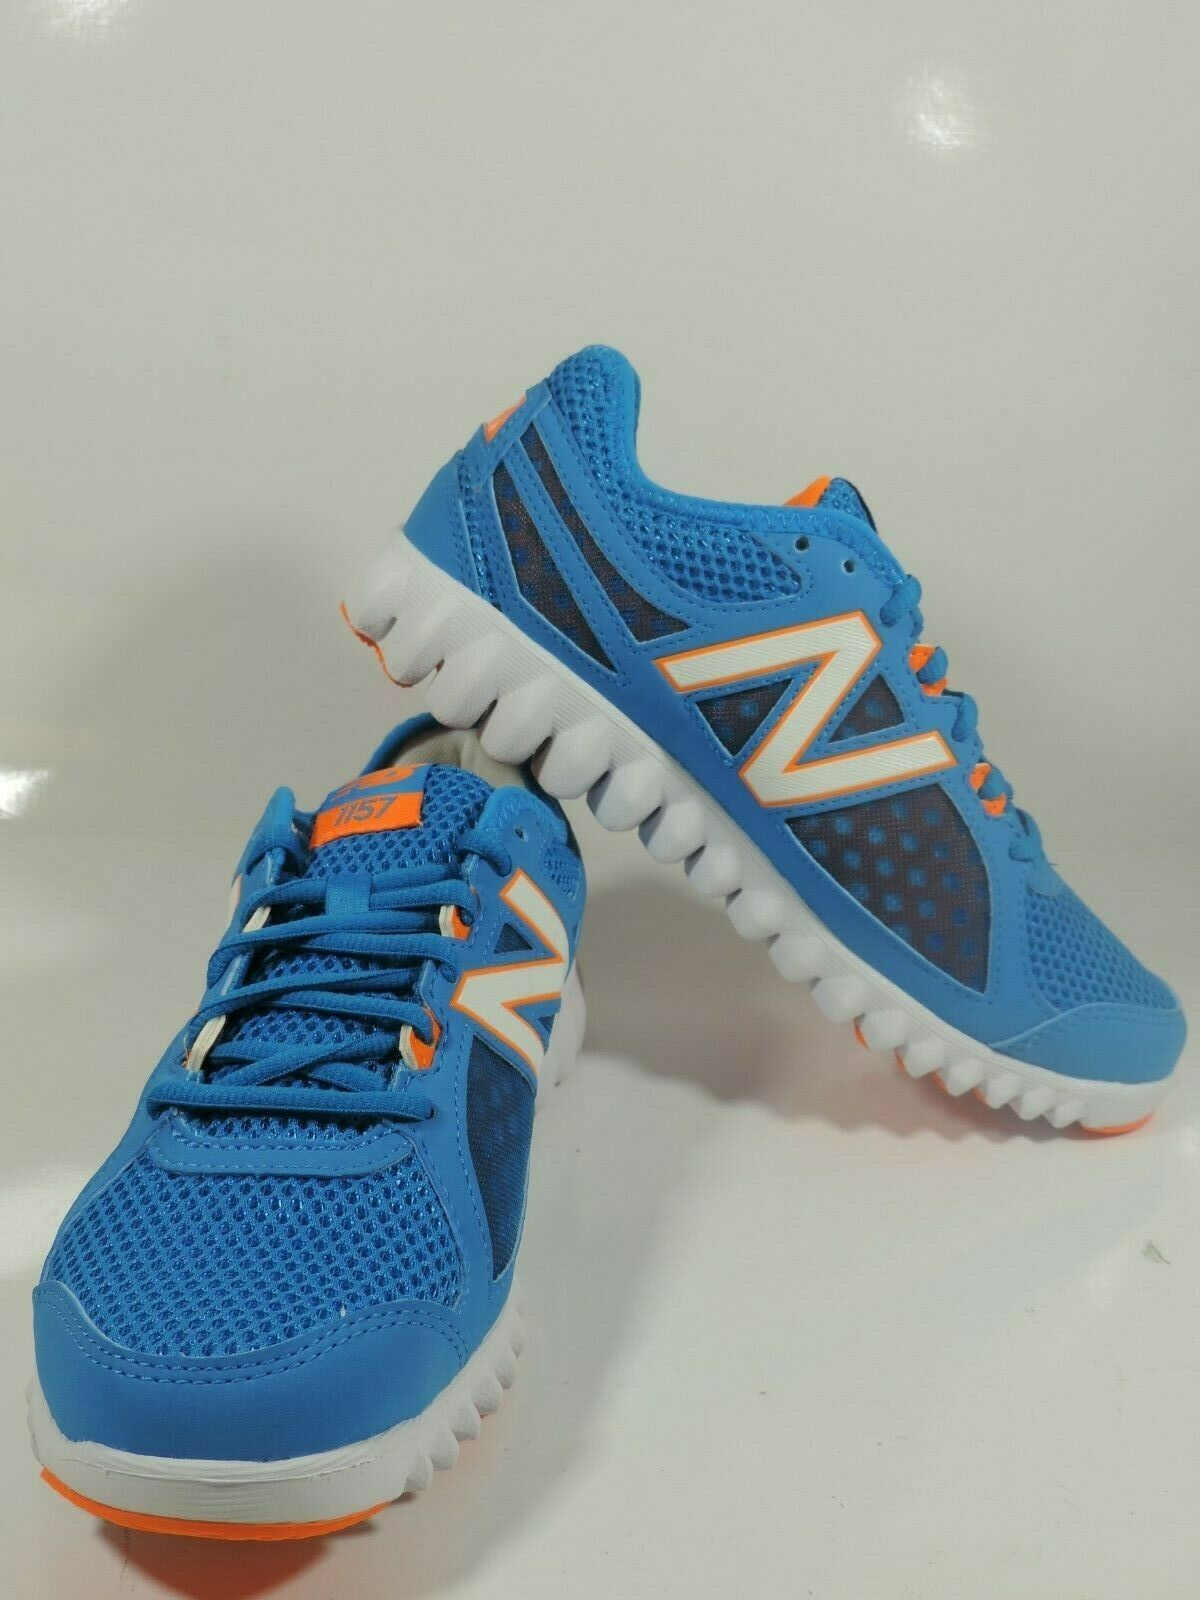 NEW BALANCE WOMENS SHOES WX1157BW SNEAKERS RUNNING BLUE WHITE SZ 6 B image 7